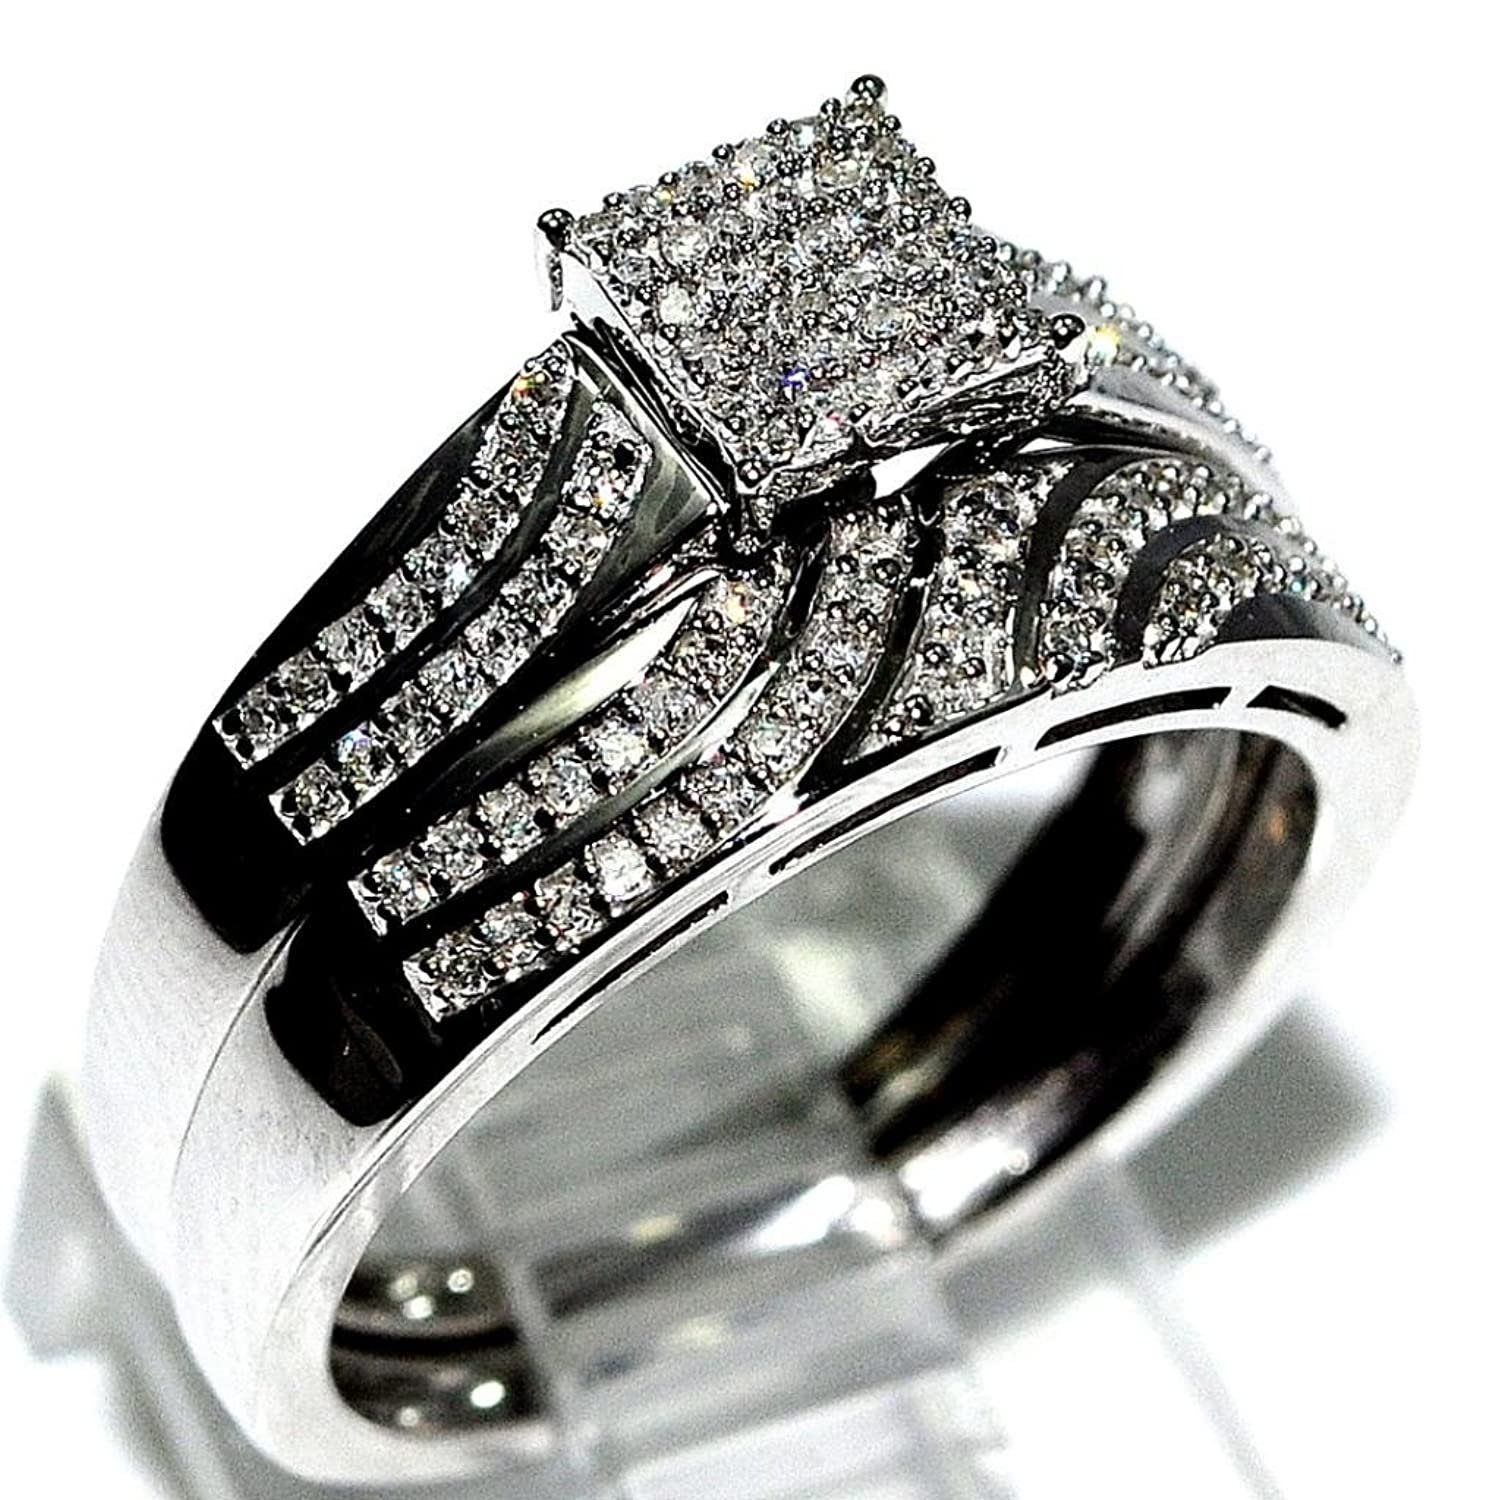 Awesome His and Her Wedding Ring Set